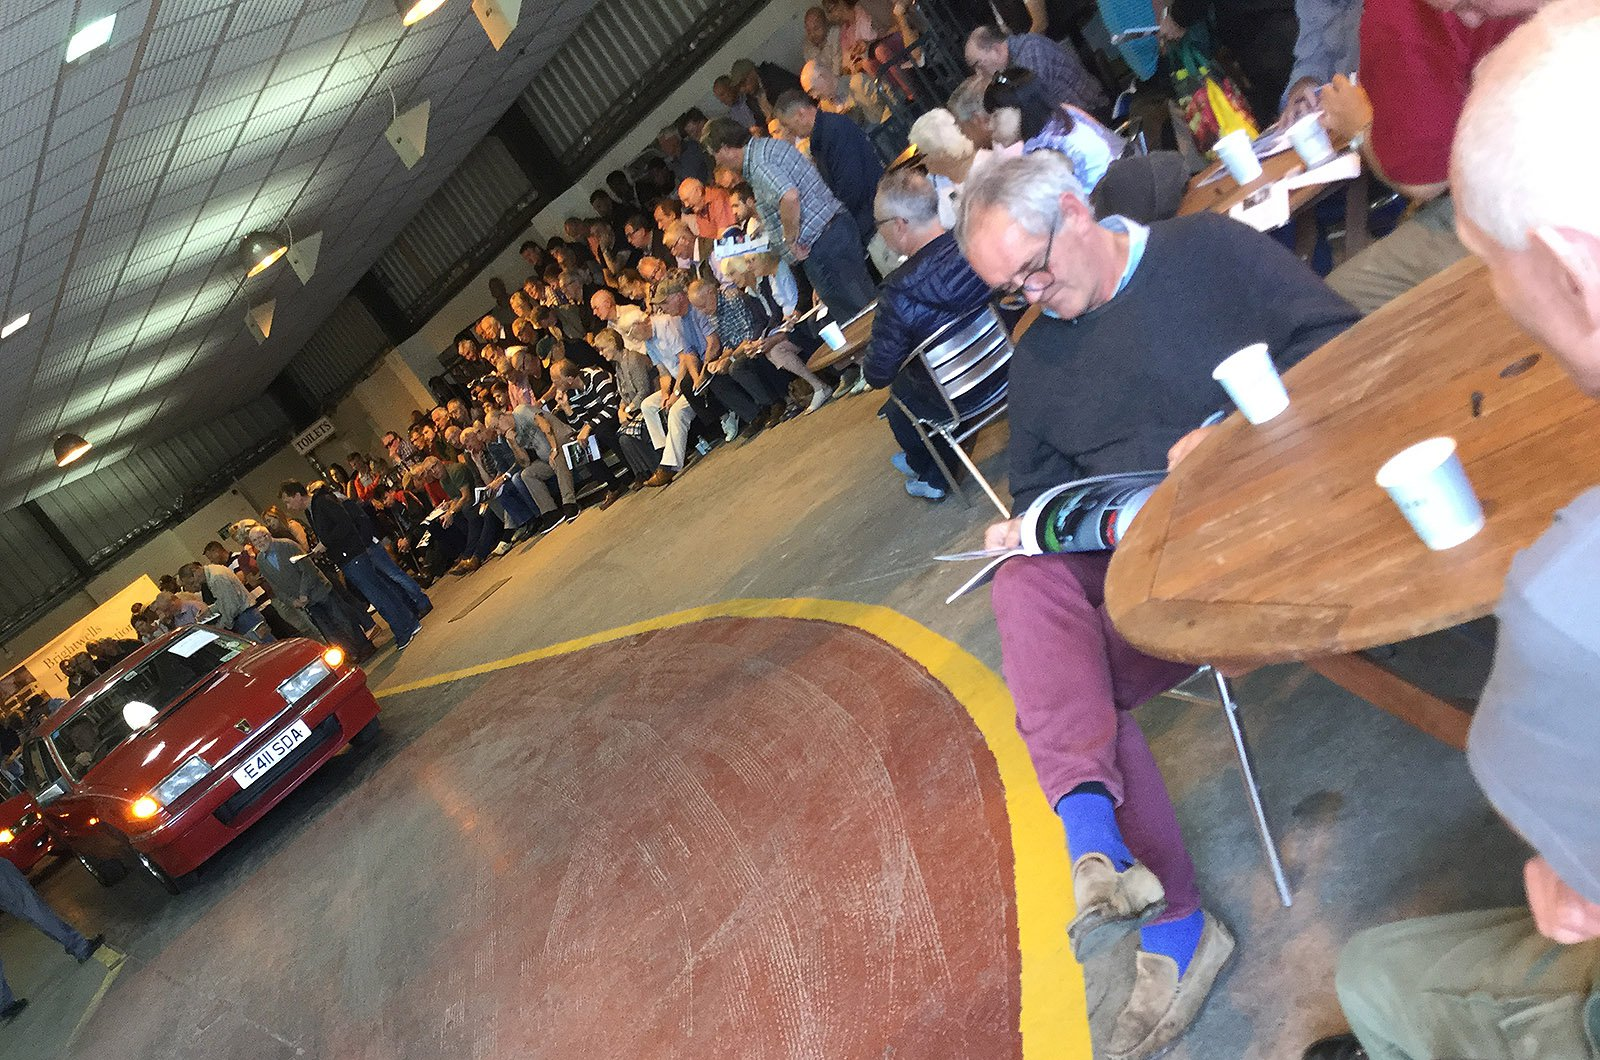 Red Rover SD1 being auctioned off